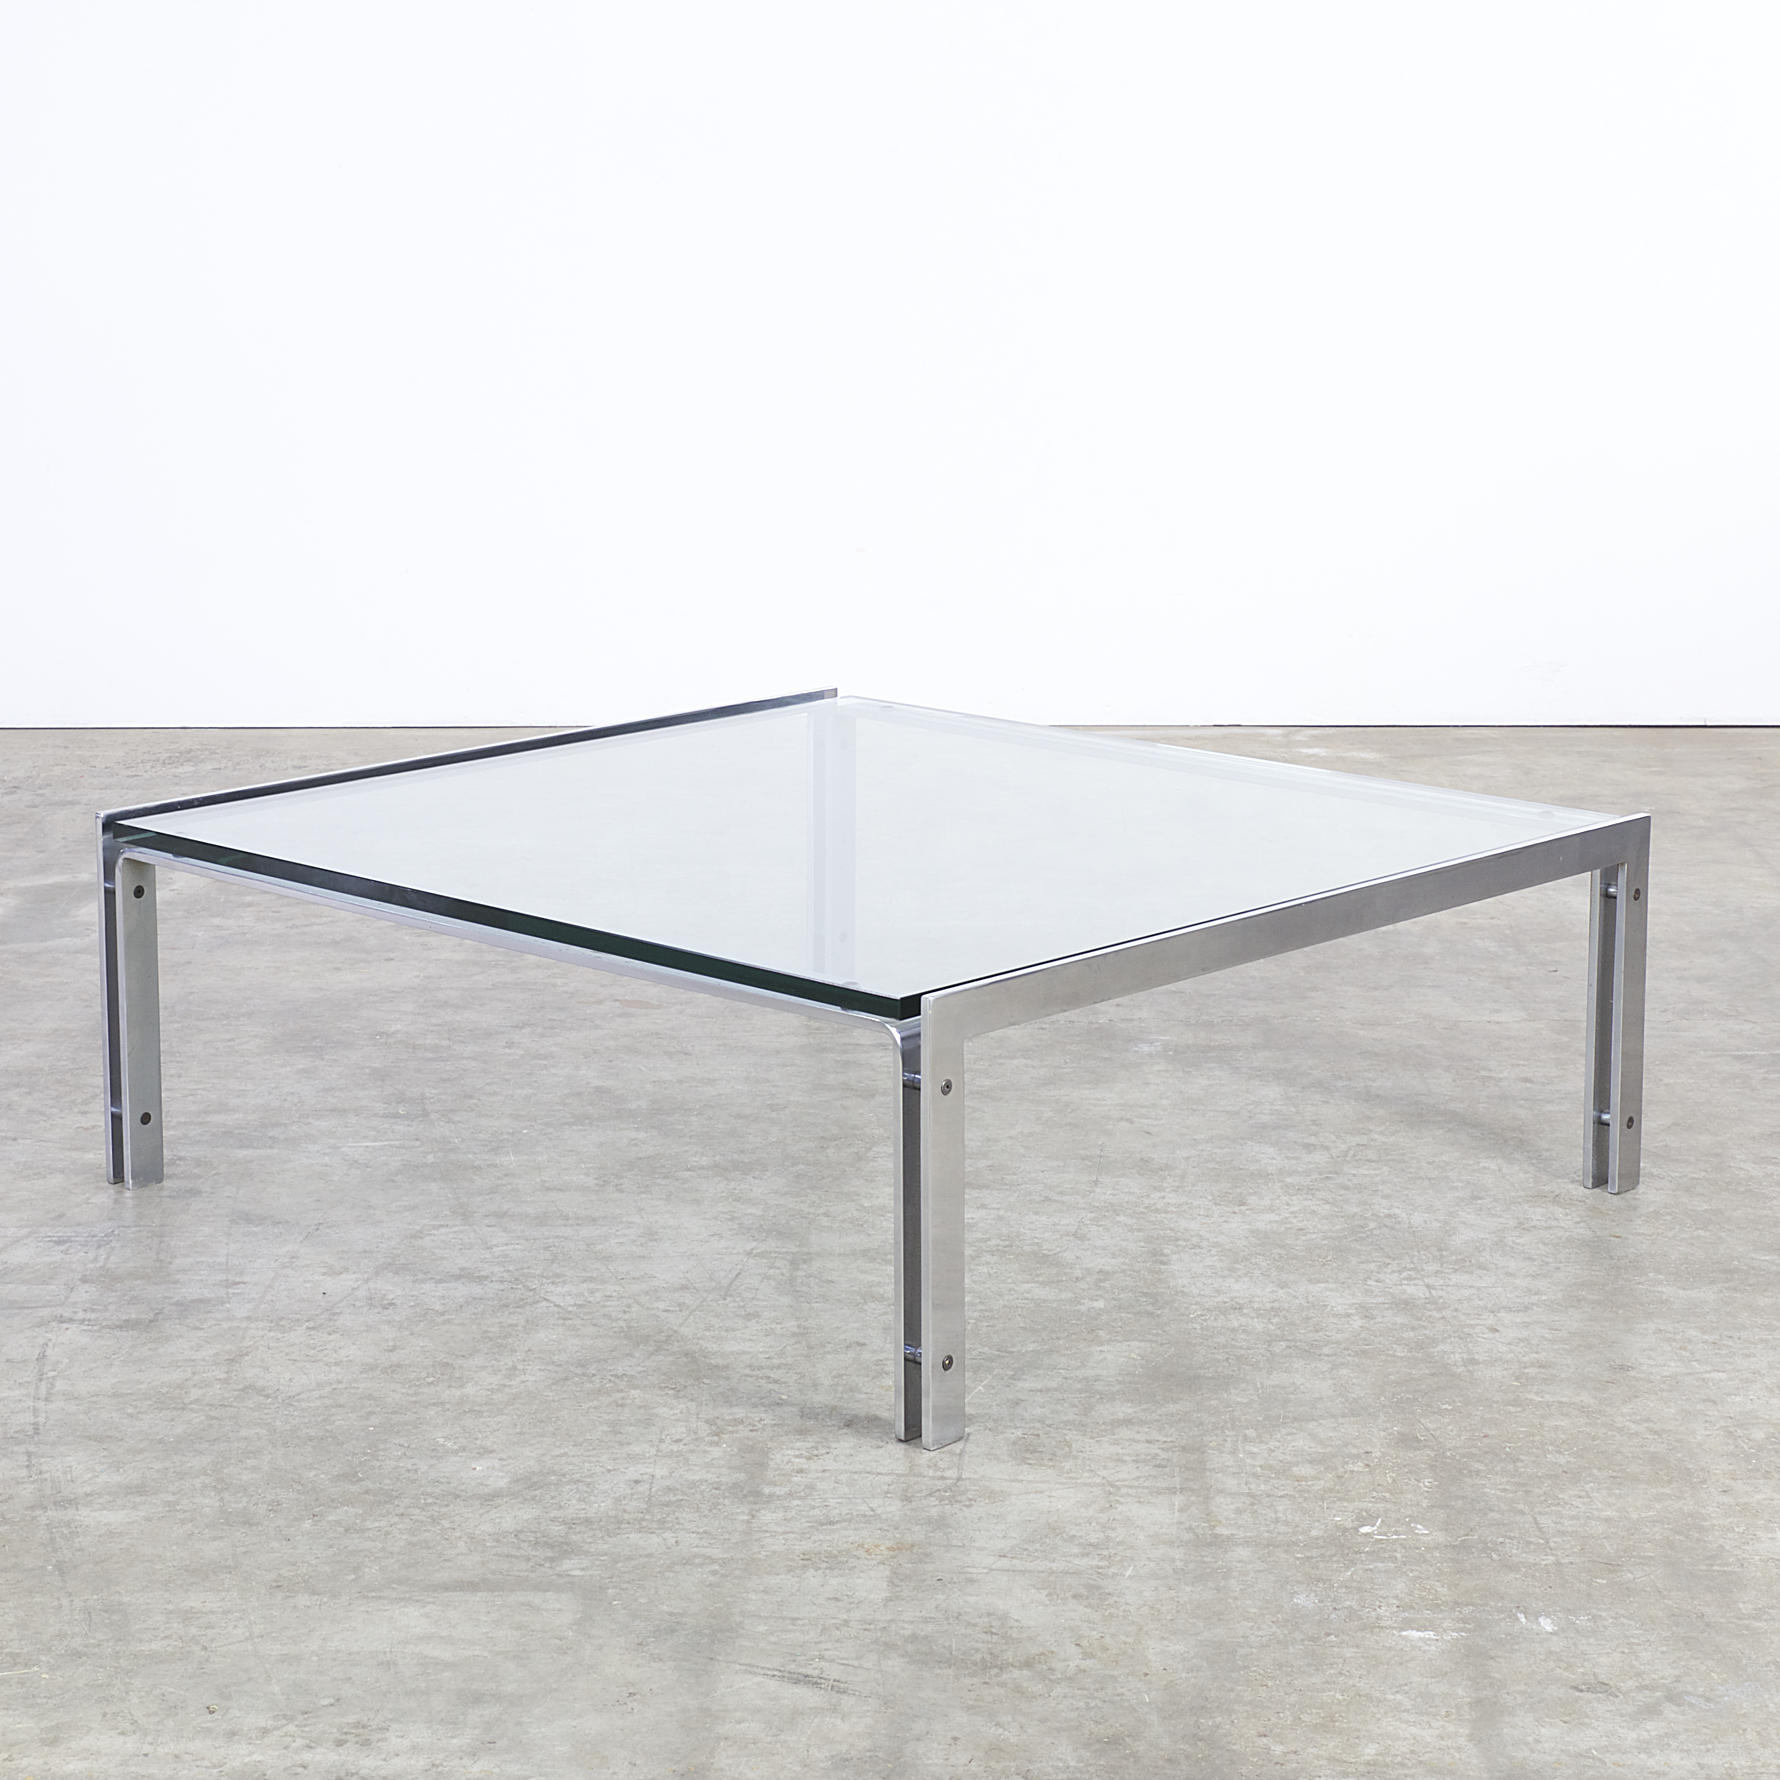 70s glass and chrome m1 coffee table for metaform barbmama for White and glass coffee table